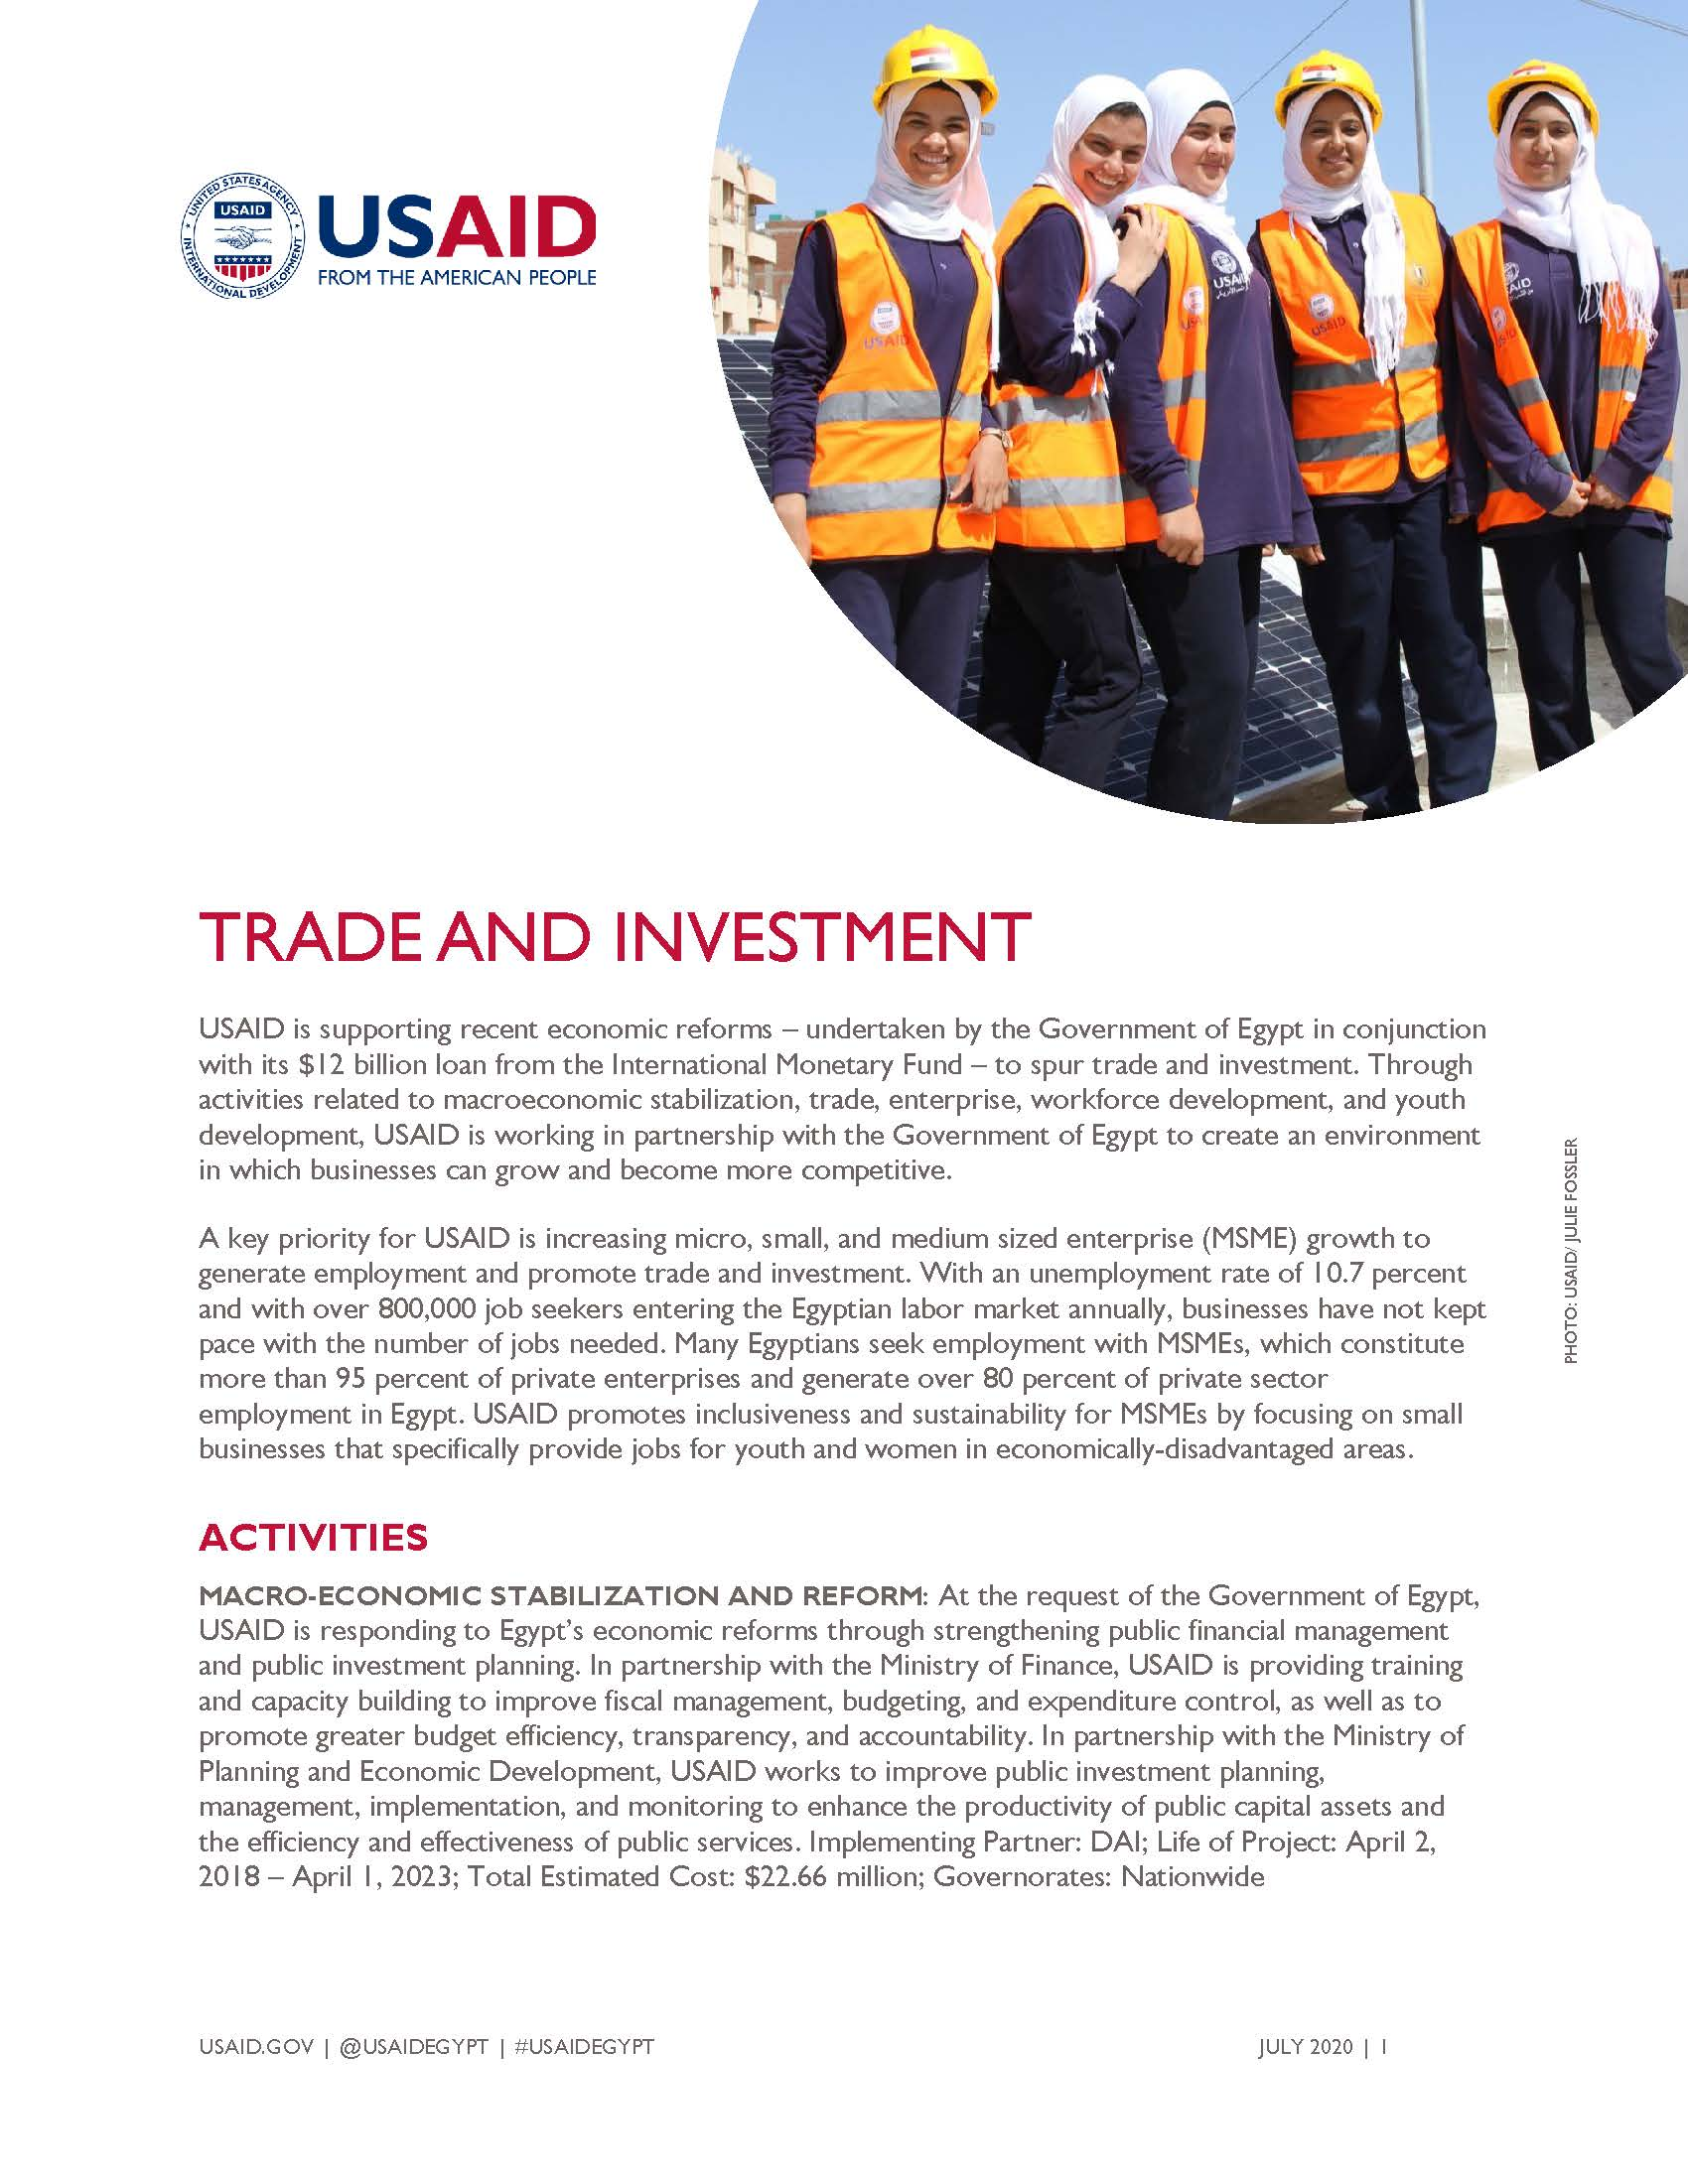 USAID/Egypt Fact Sheet: Trade and Investment